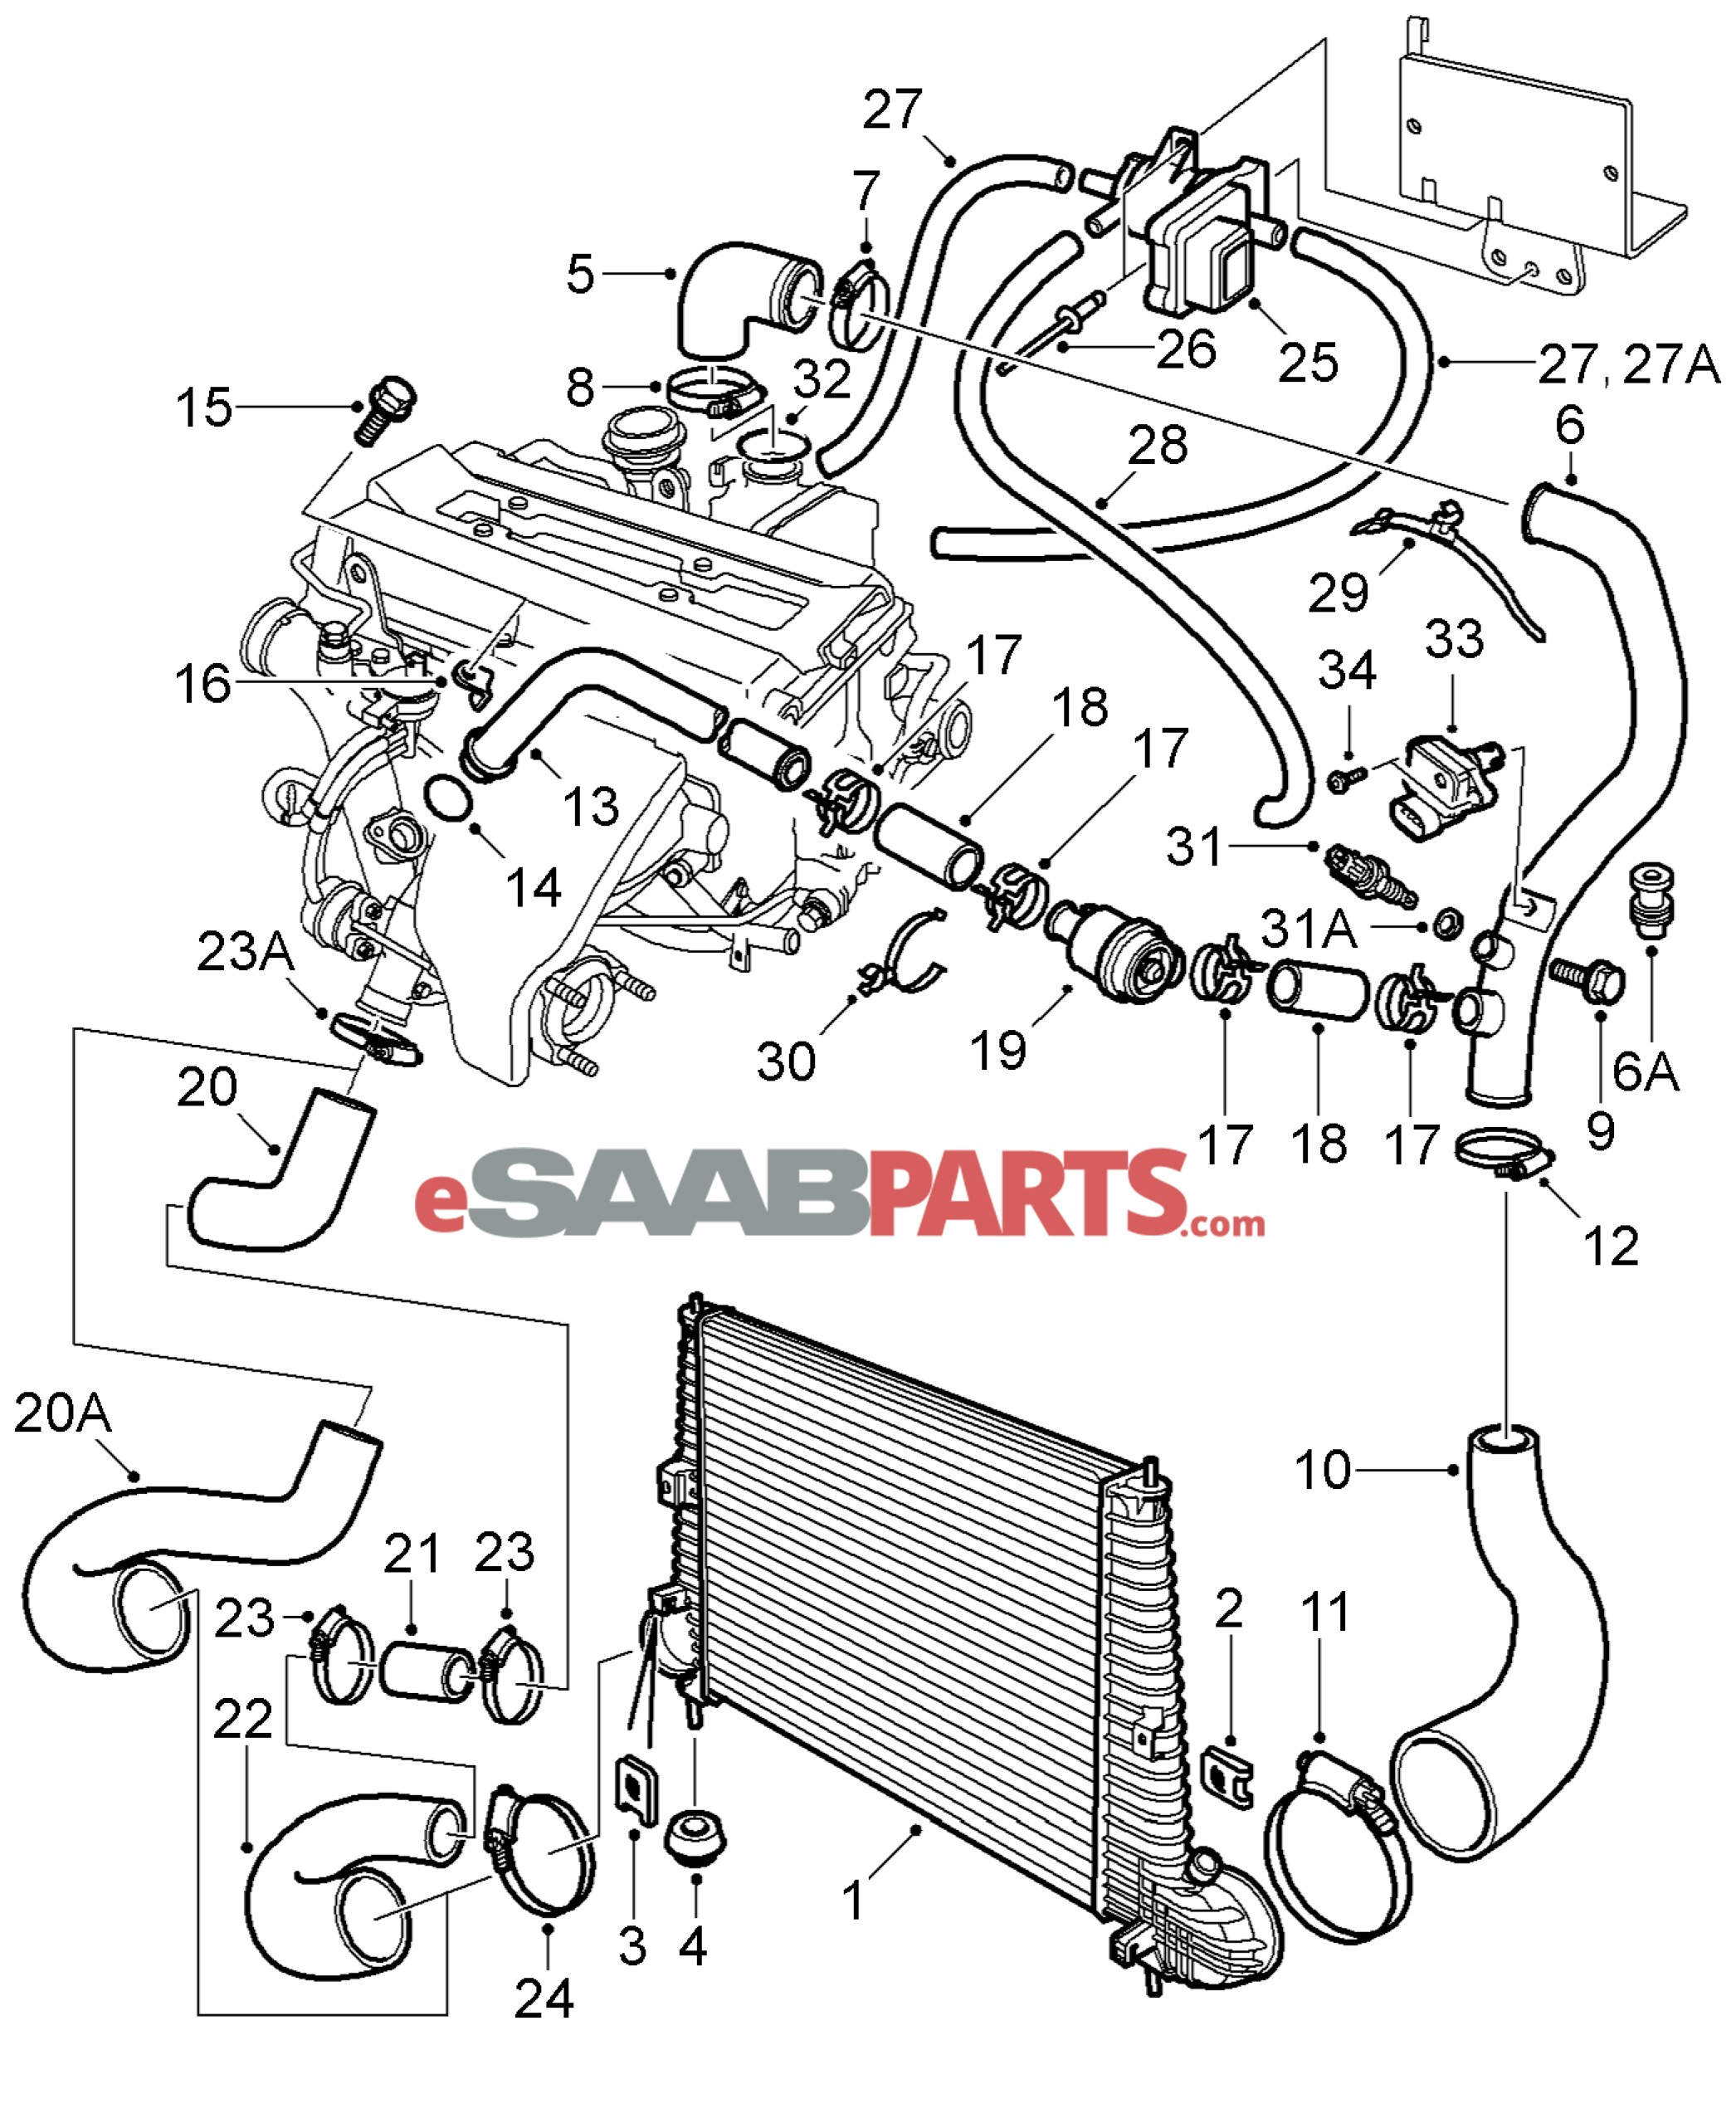 saab v6 engine diagram wiring diagrams the